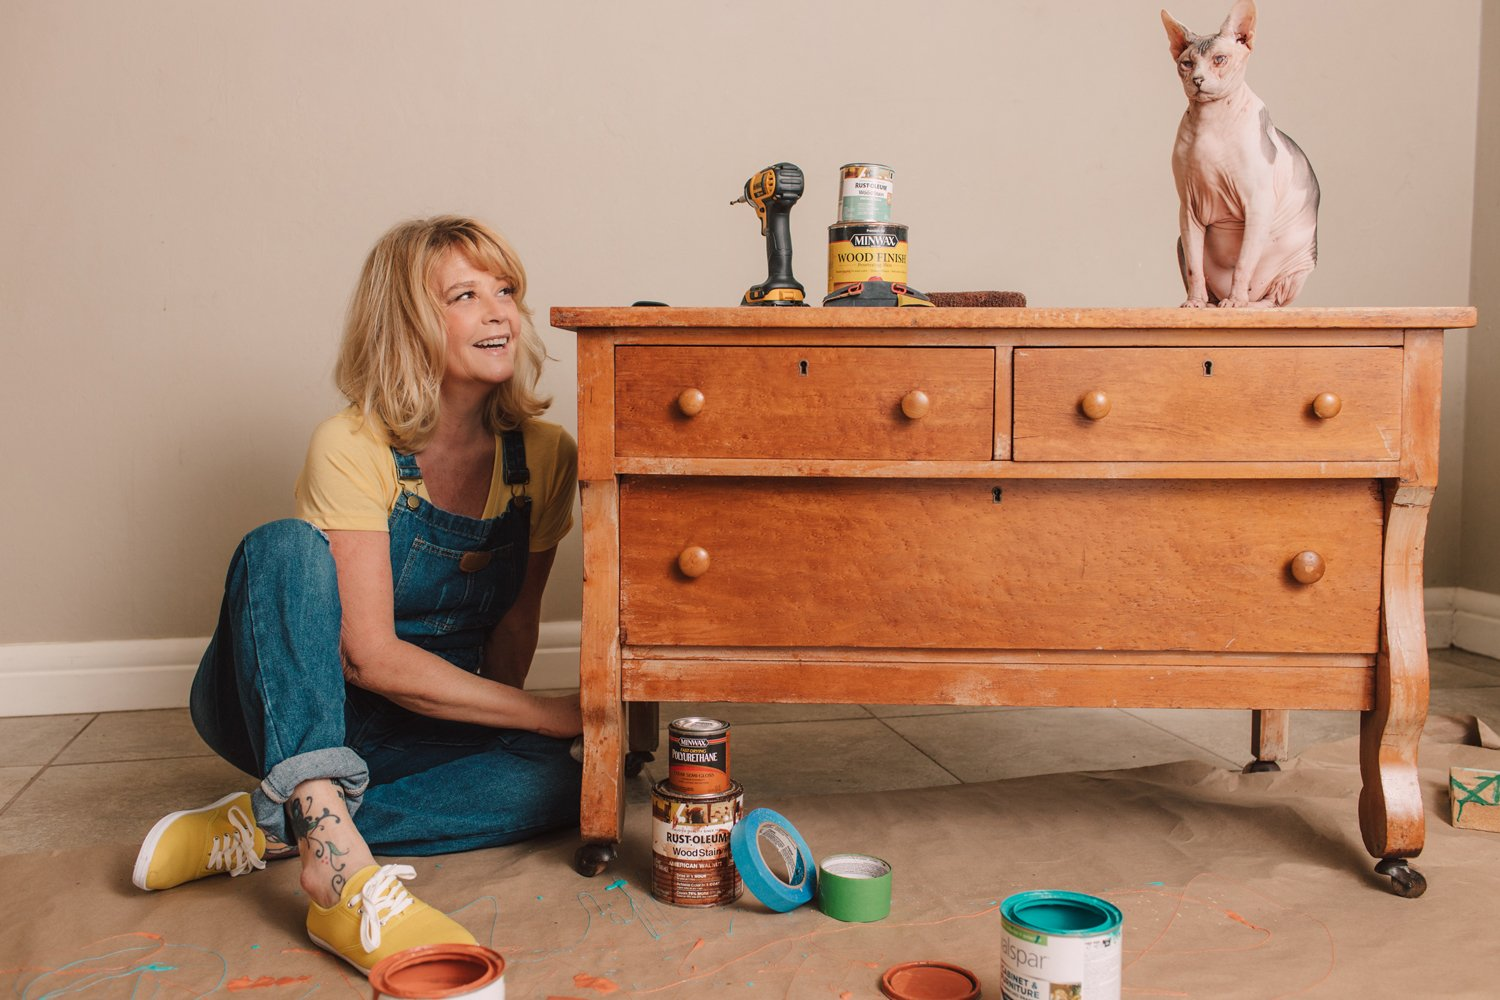 blonde woman painting furniture with hairless cat questions for branding photographer